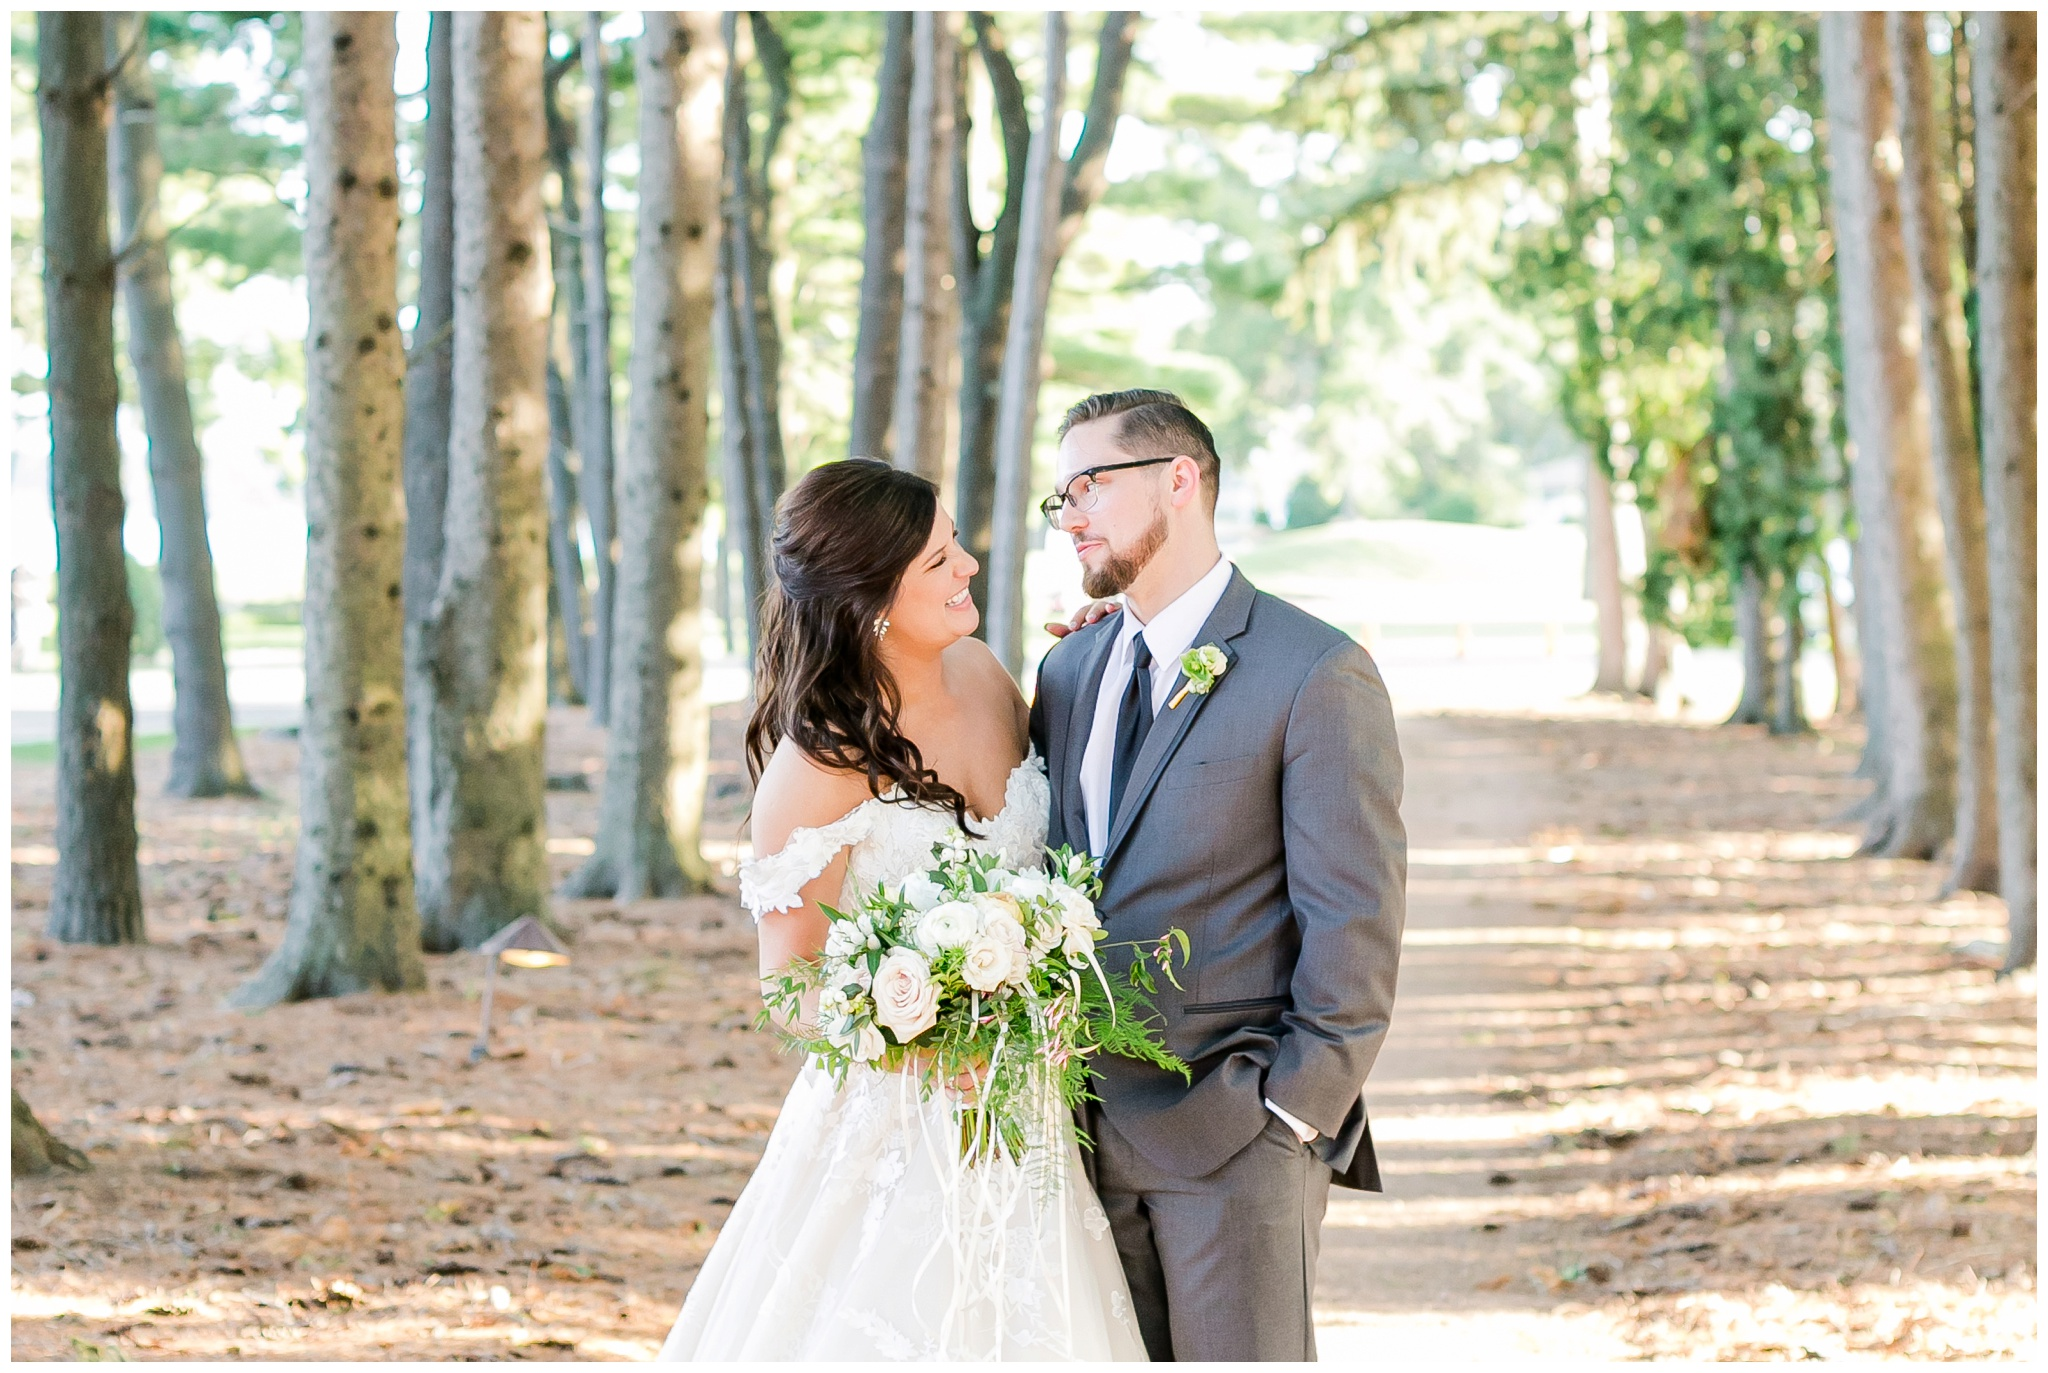 bishops_bay_country_club_wedding_middleton_wisconsin_caynay_photo_4735.jpg